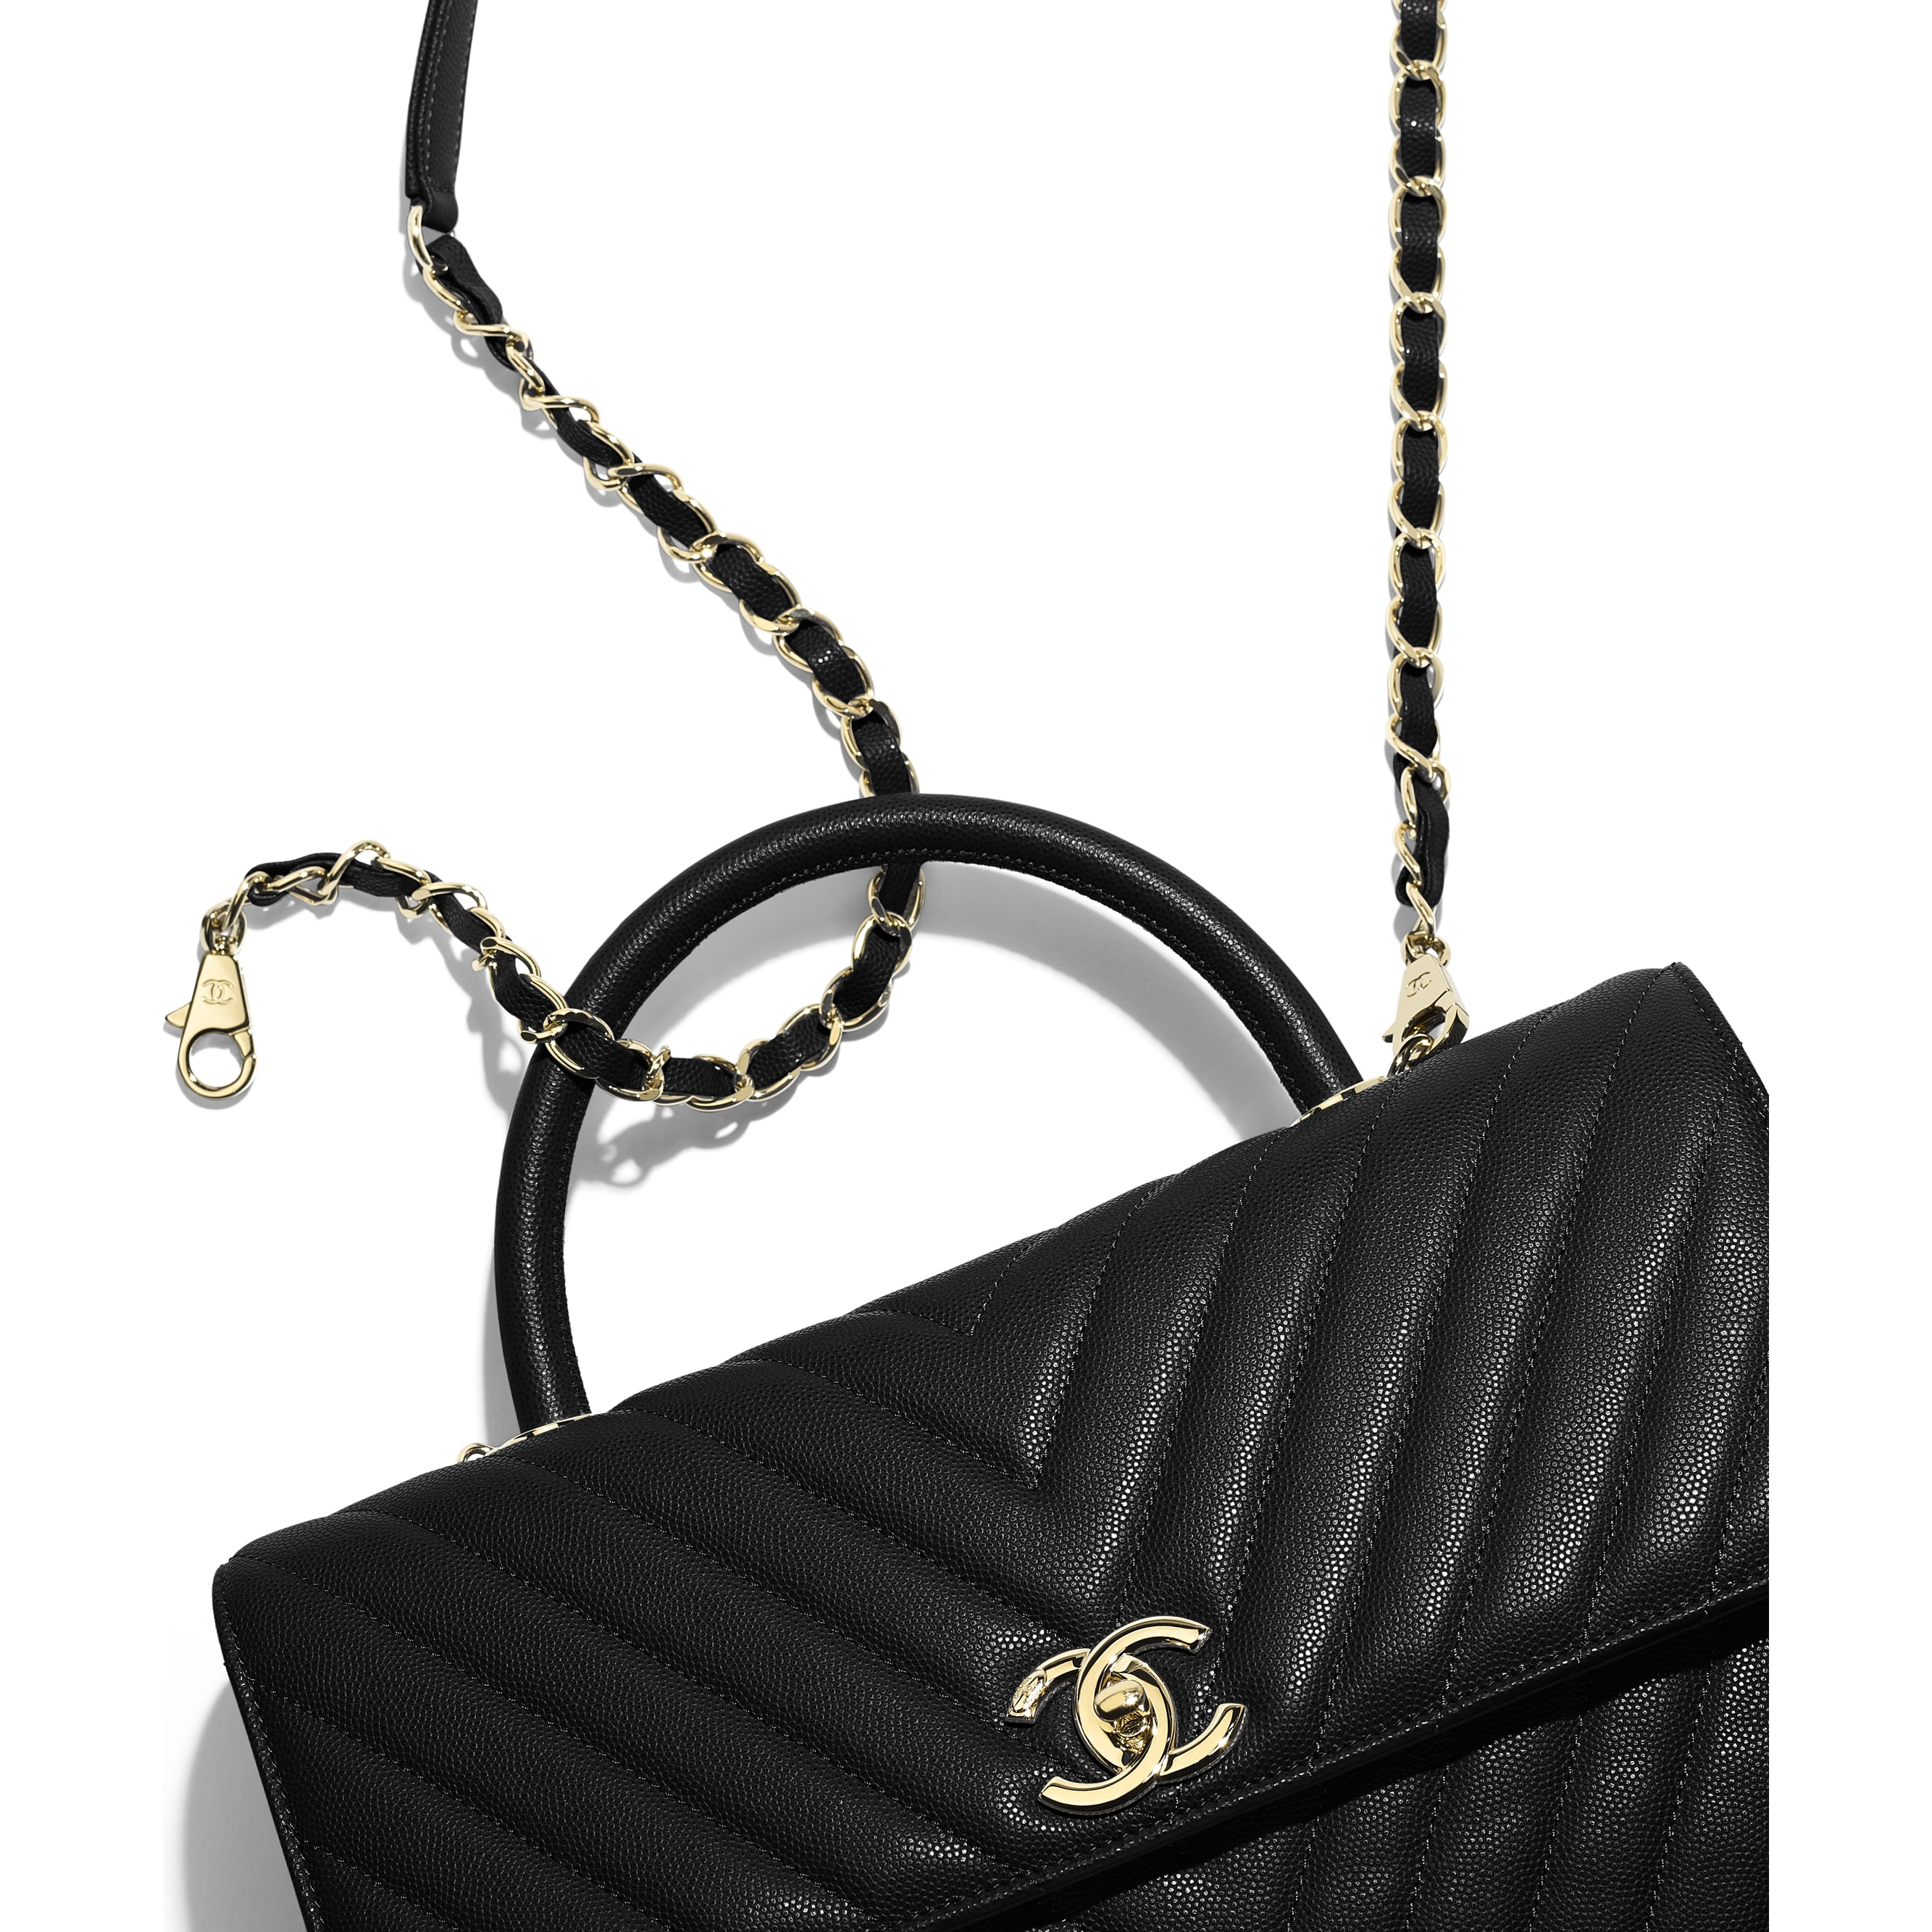 Large Flap Bag with Top Handle - Black - Grained Calfskin & Gold-Tone Metal - CHANEL - Extra view - see standard sized version